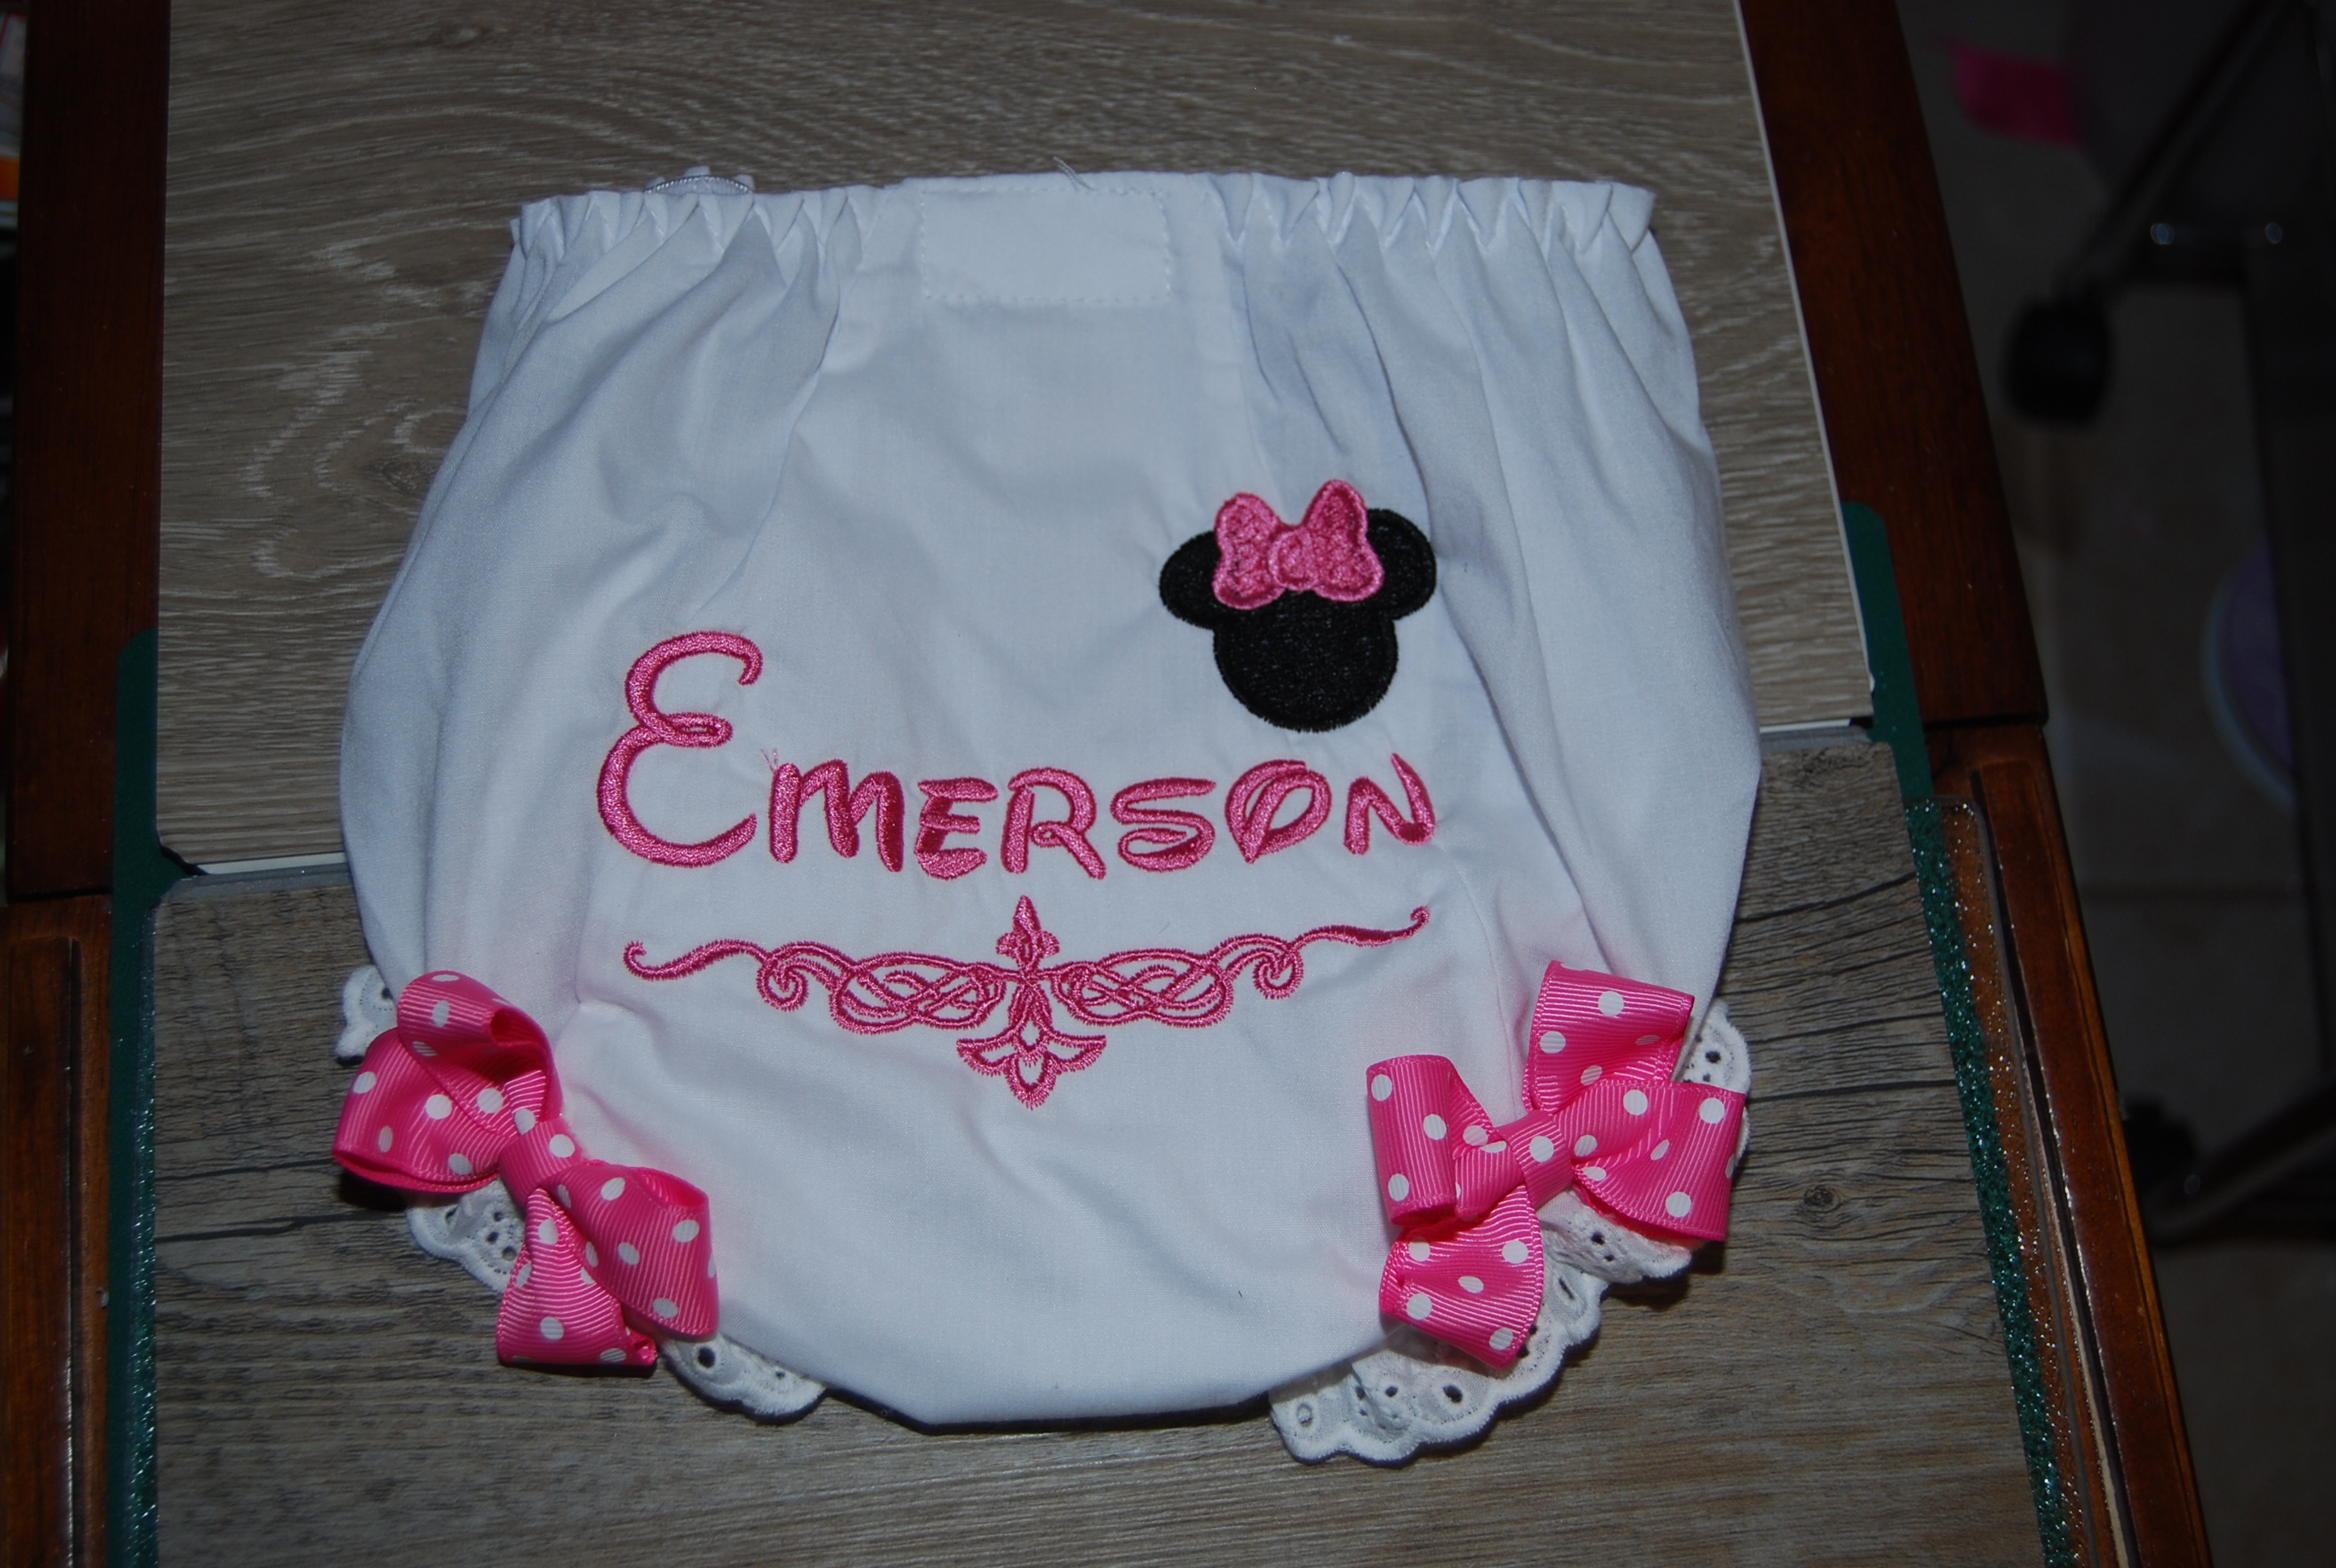 matching bloomers included